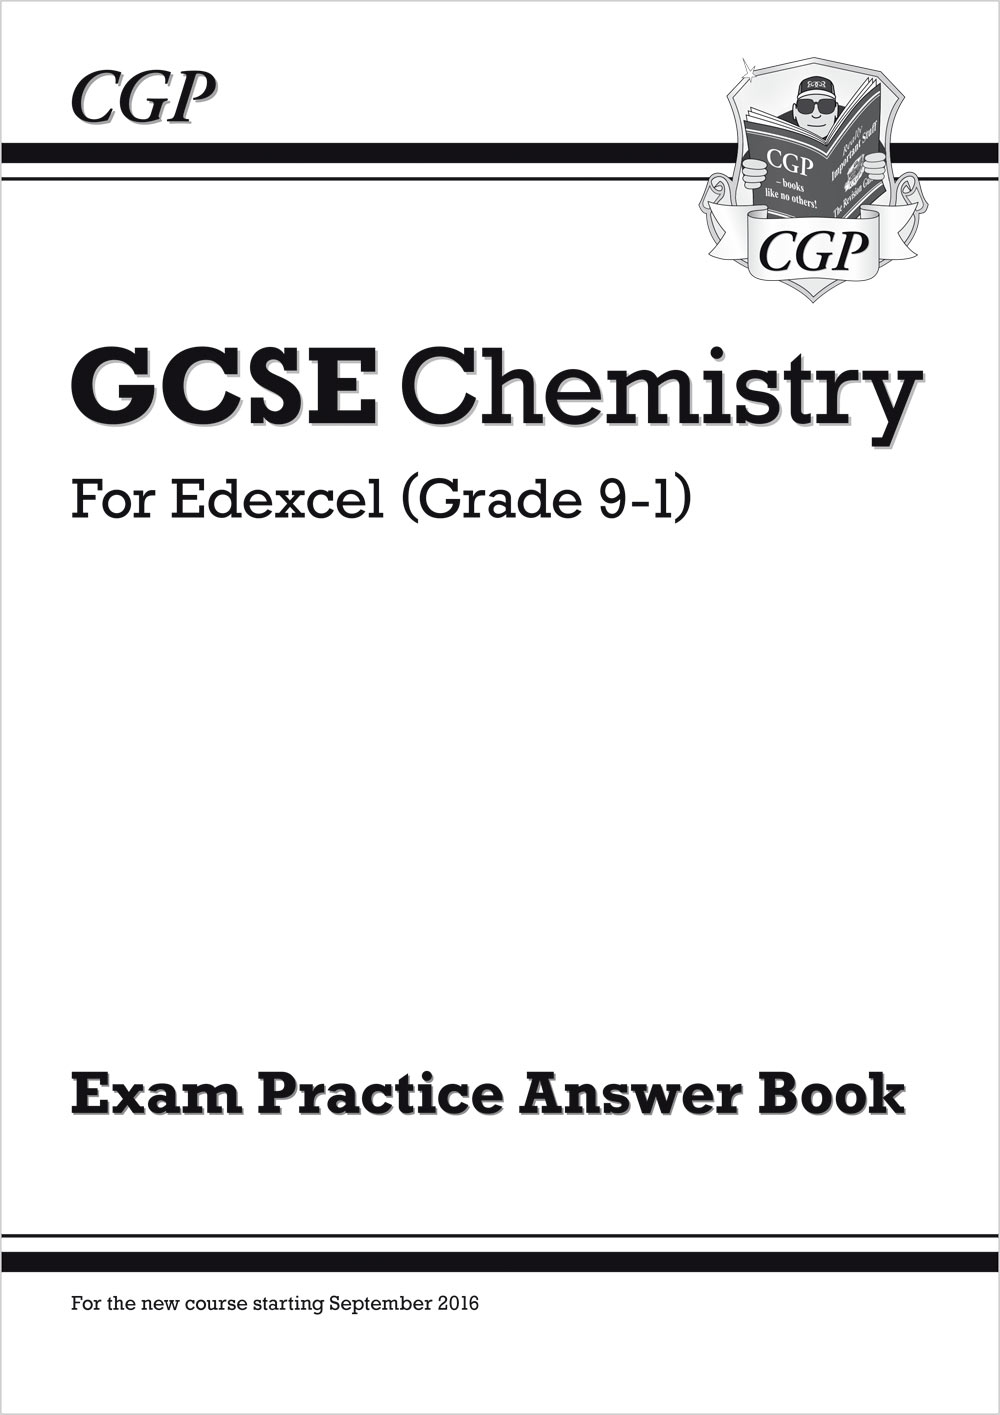 CEQA41 - GCSE Chemistry: Edexcel Answers (for Exam Practice Workbook)